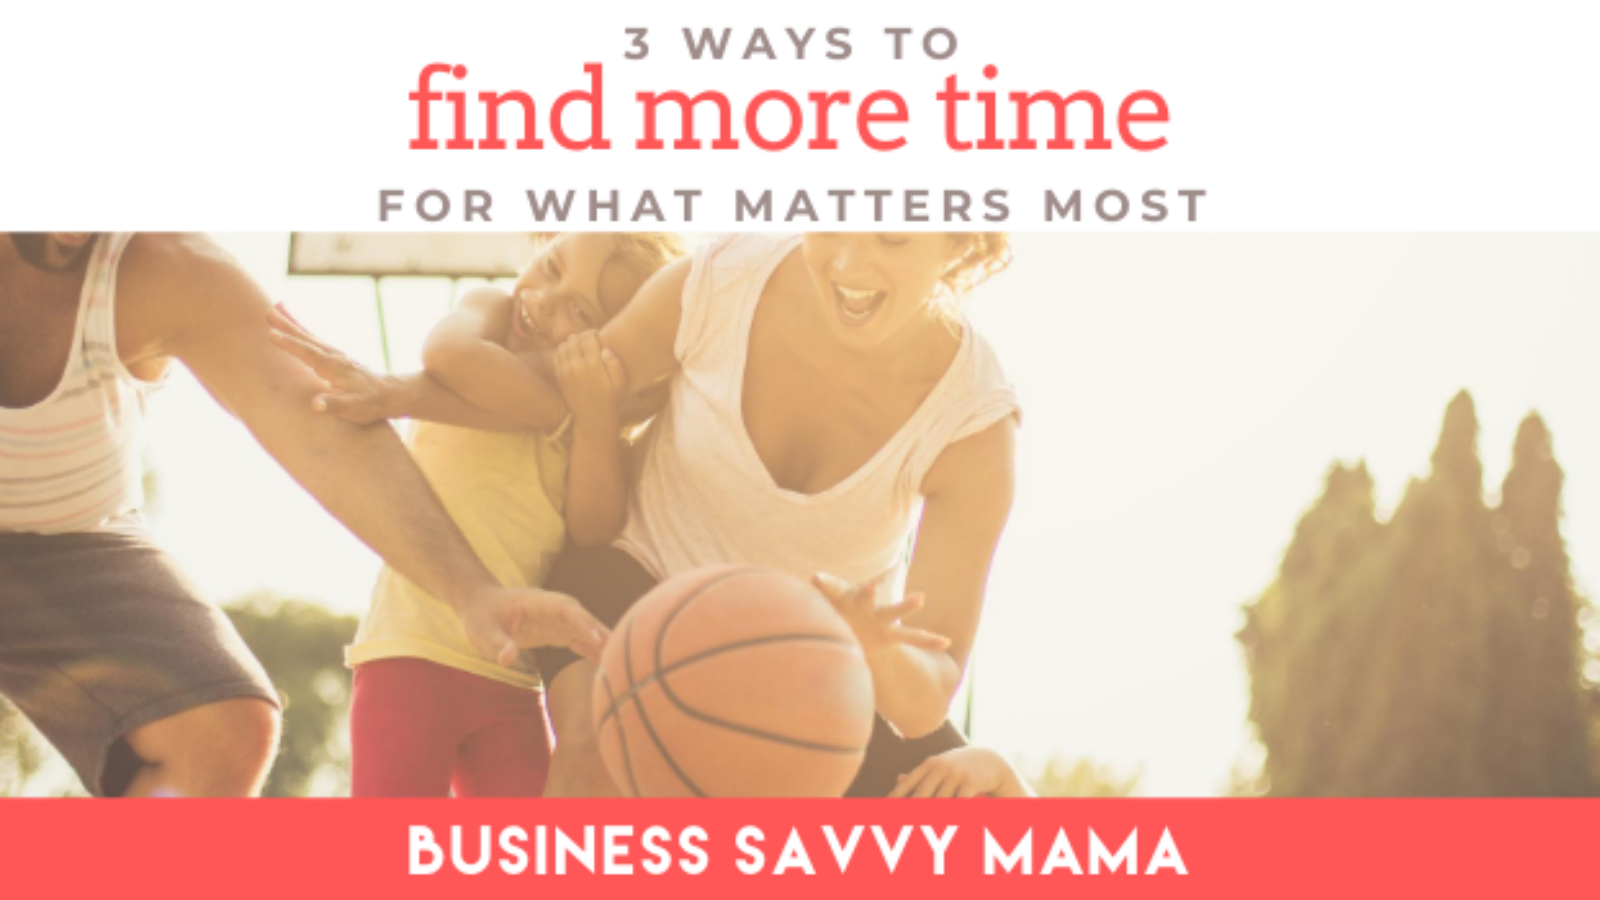 Find more time - Business Savvy Mama